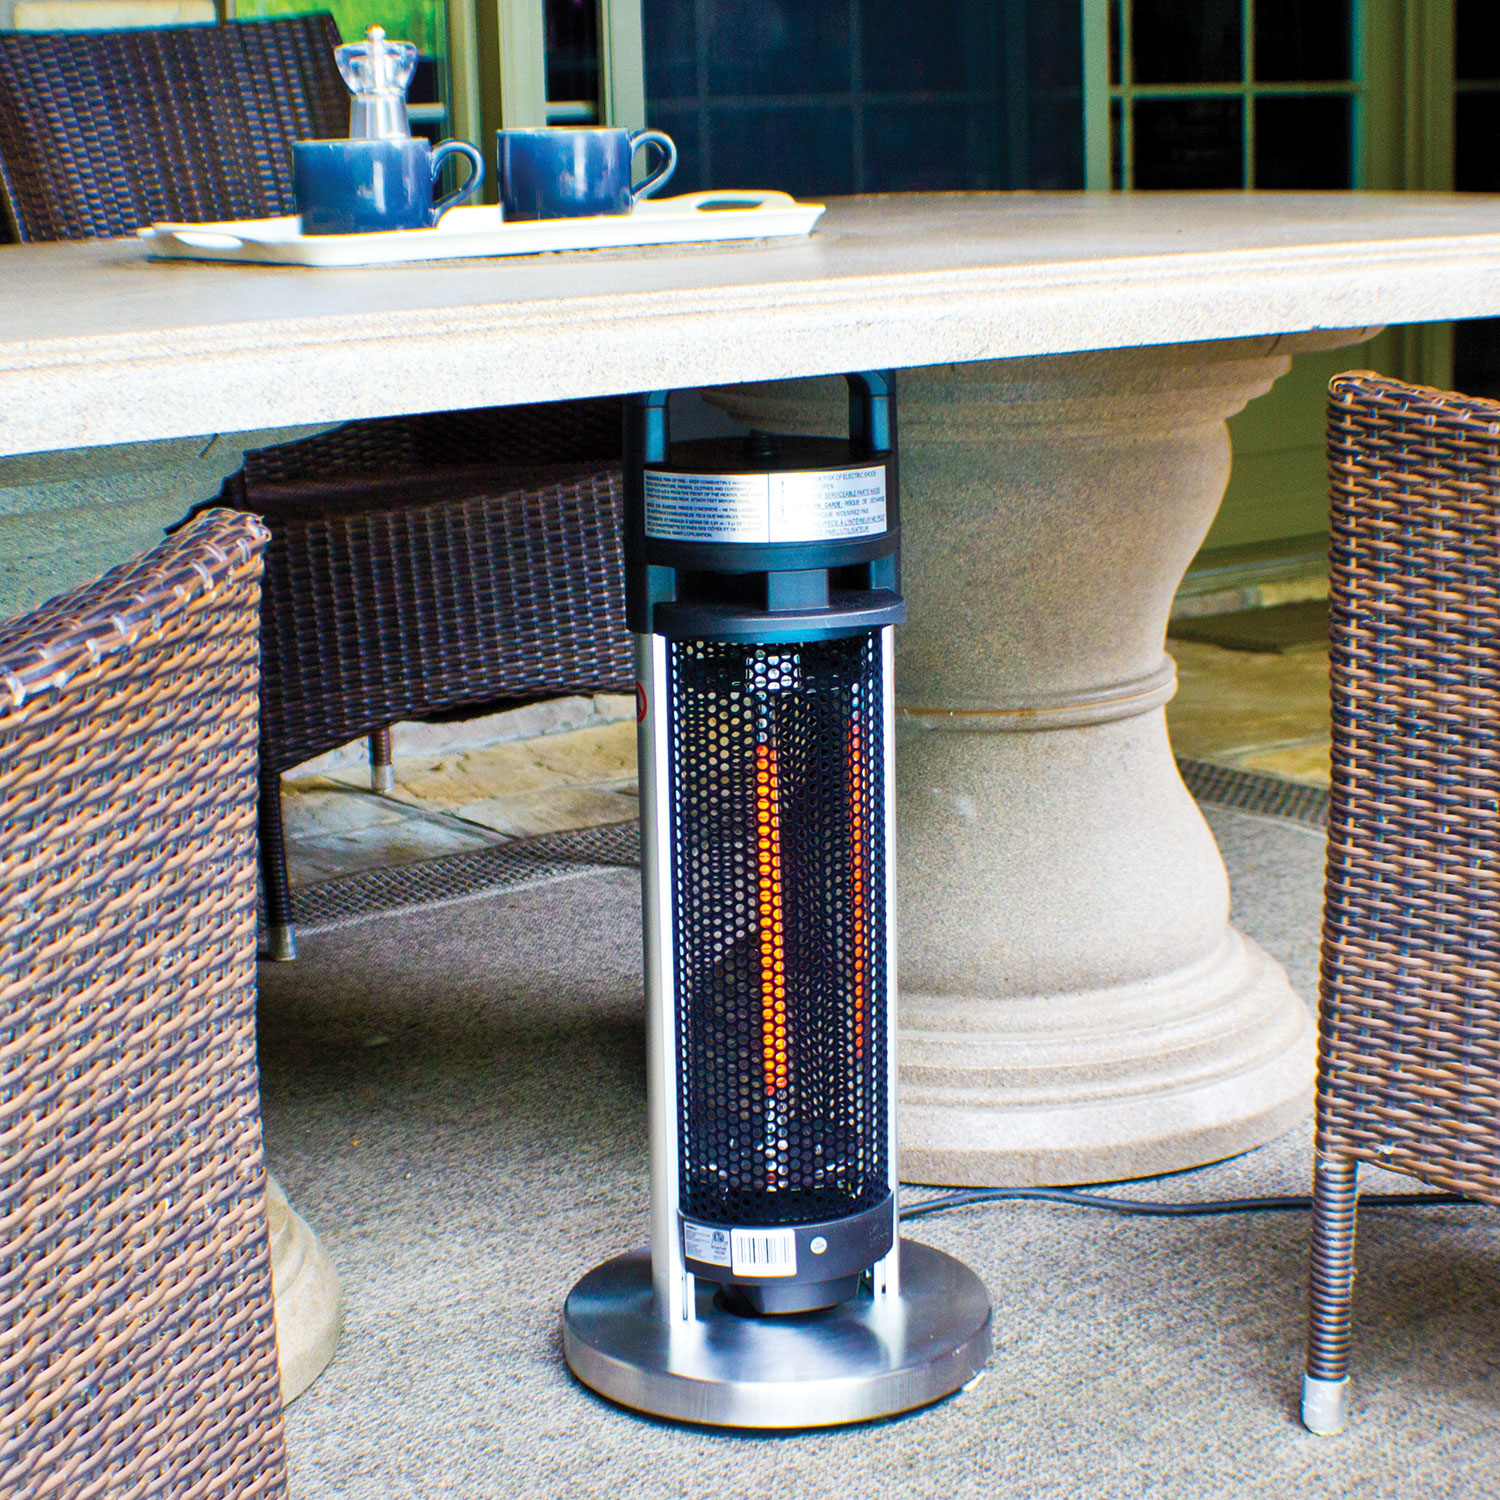 pro event heater u country best town exterior reviews space full design ue interesting dark gas uk size heaters outdoor of kindle az patio with ideas contemporary white modern